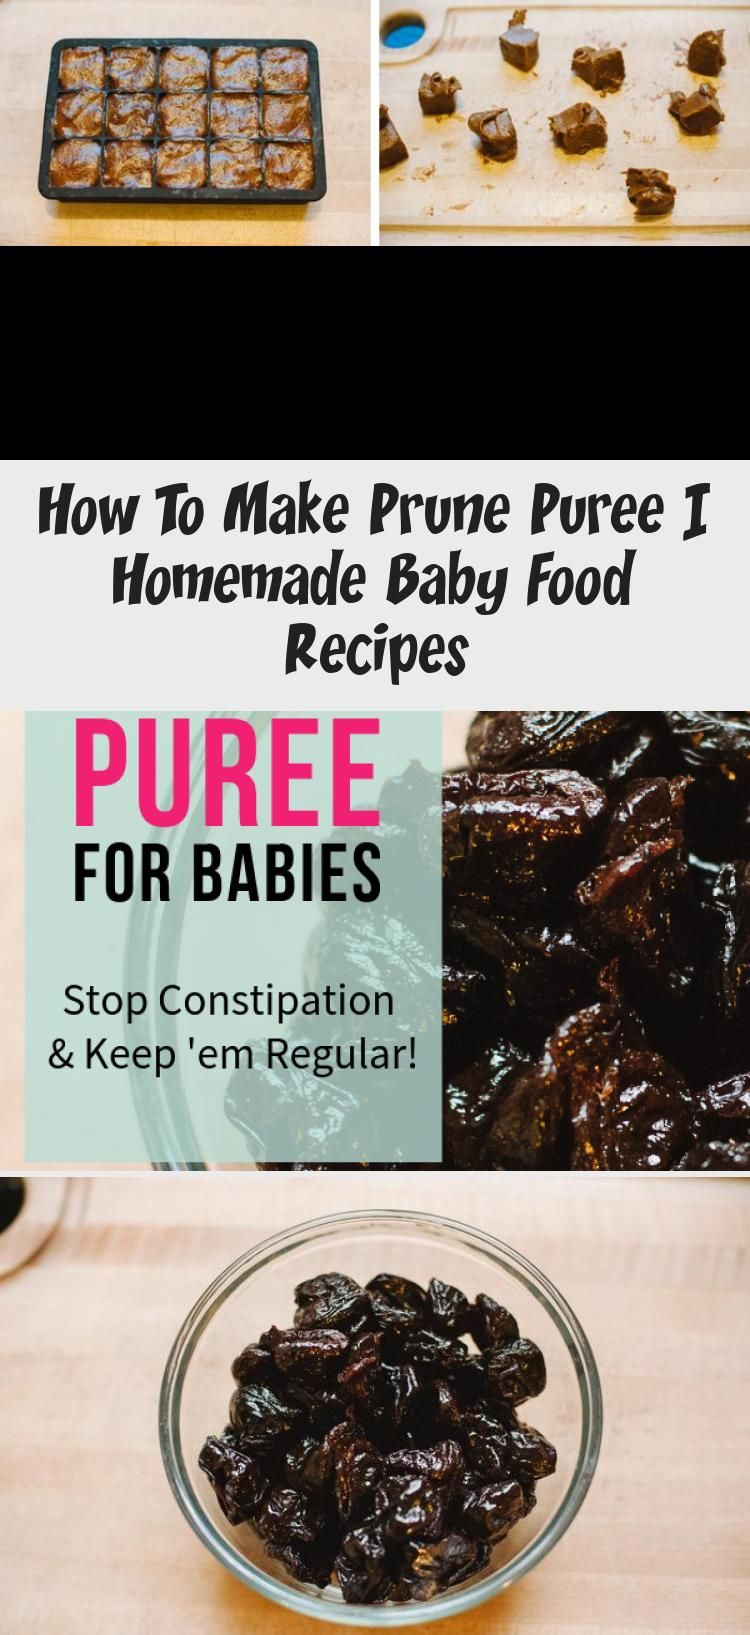 How To Make Prune Puree in 2020   Homemade baby food ...